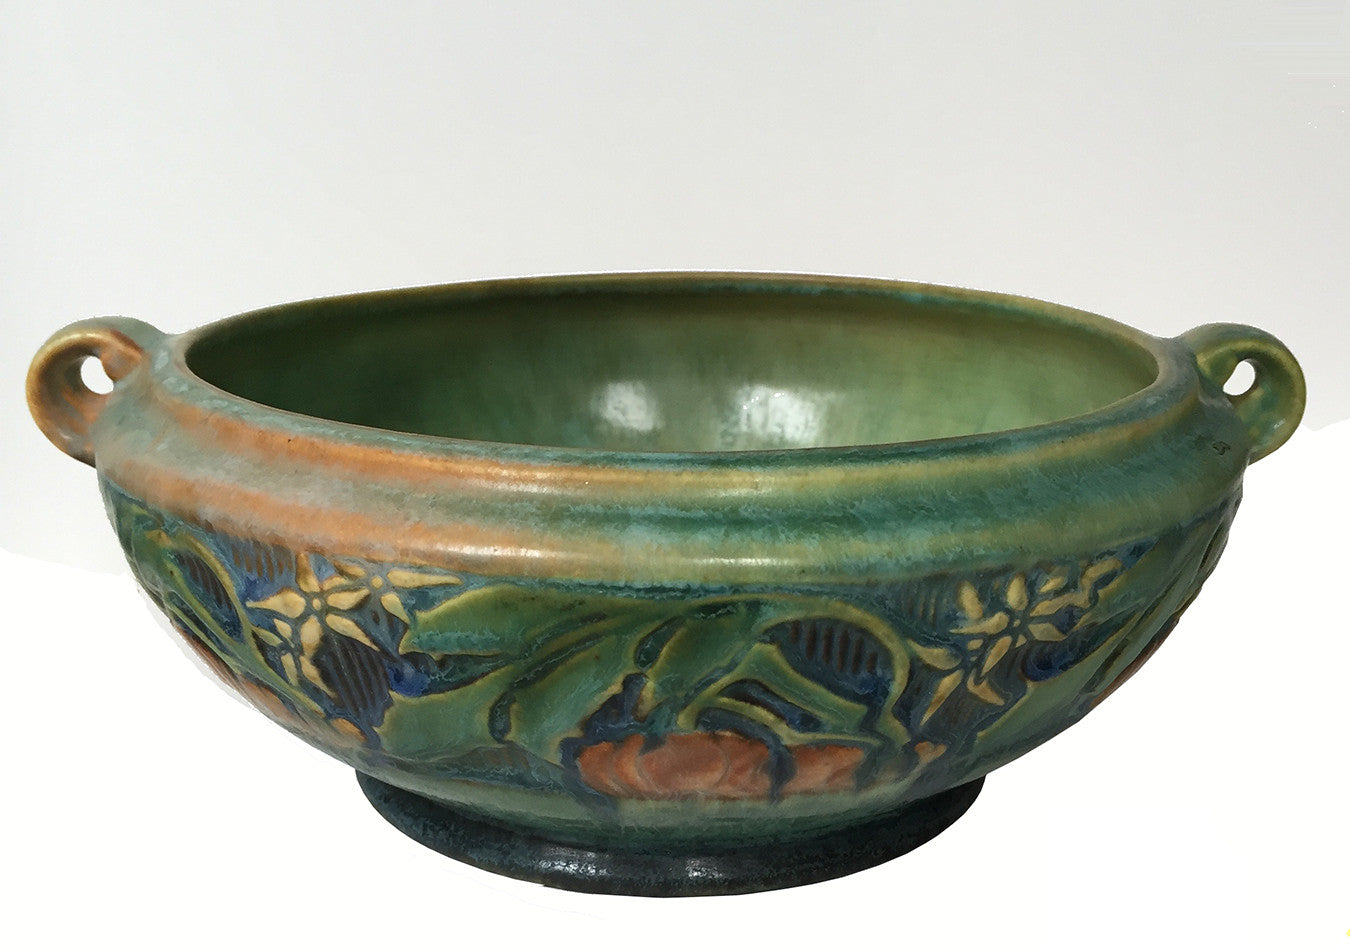 SOLD Roseville Green Pottery Baneda Pattern Low Bowl, circa 1930